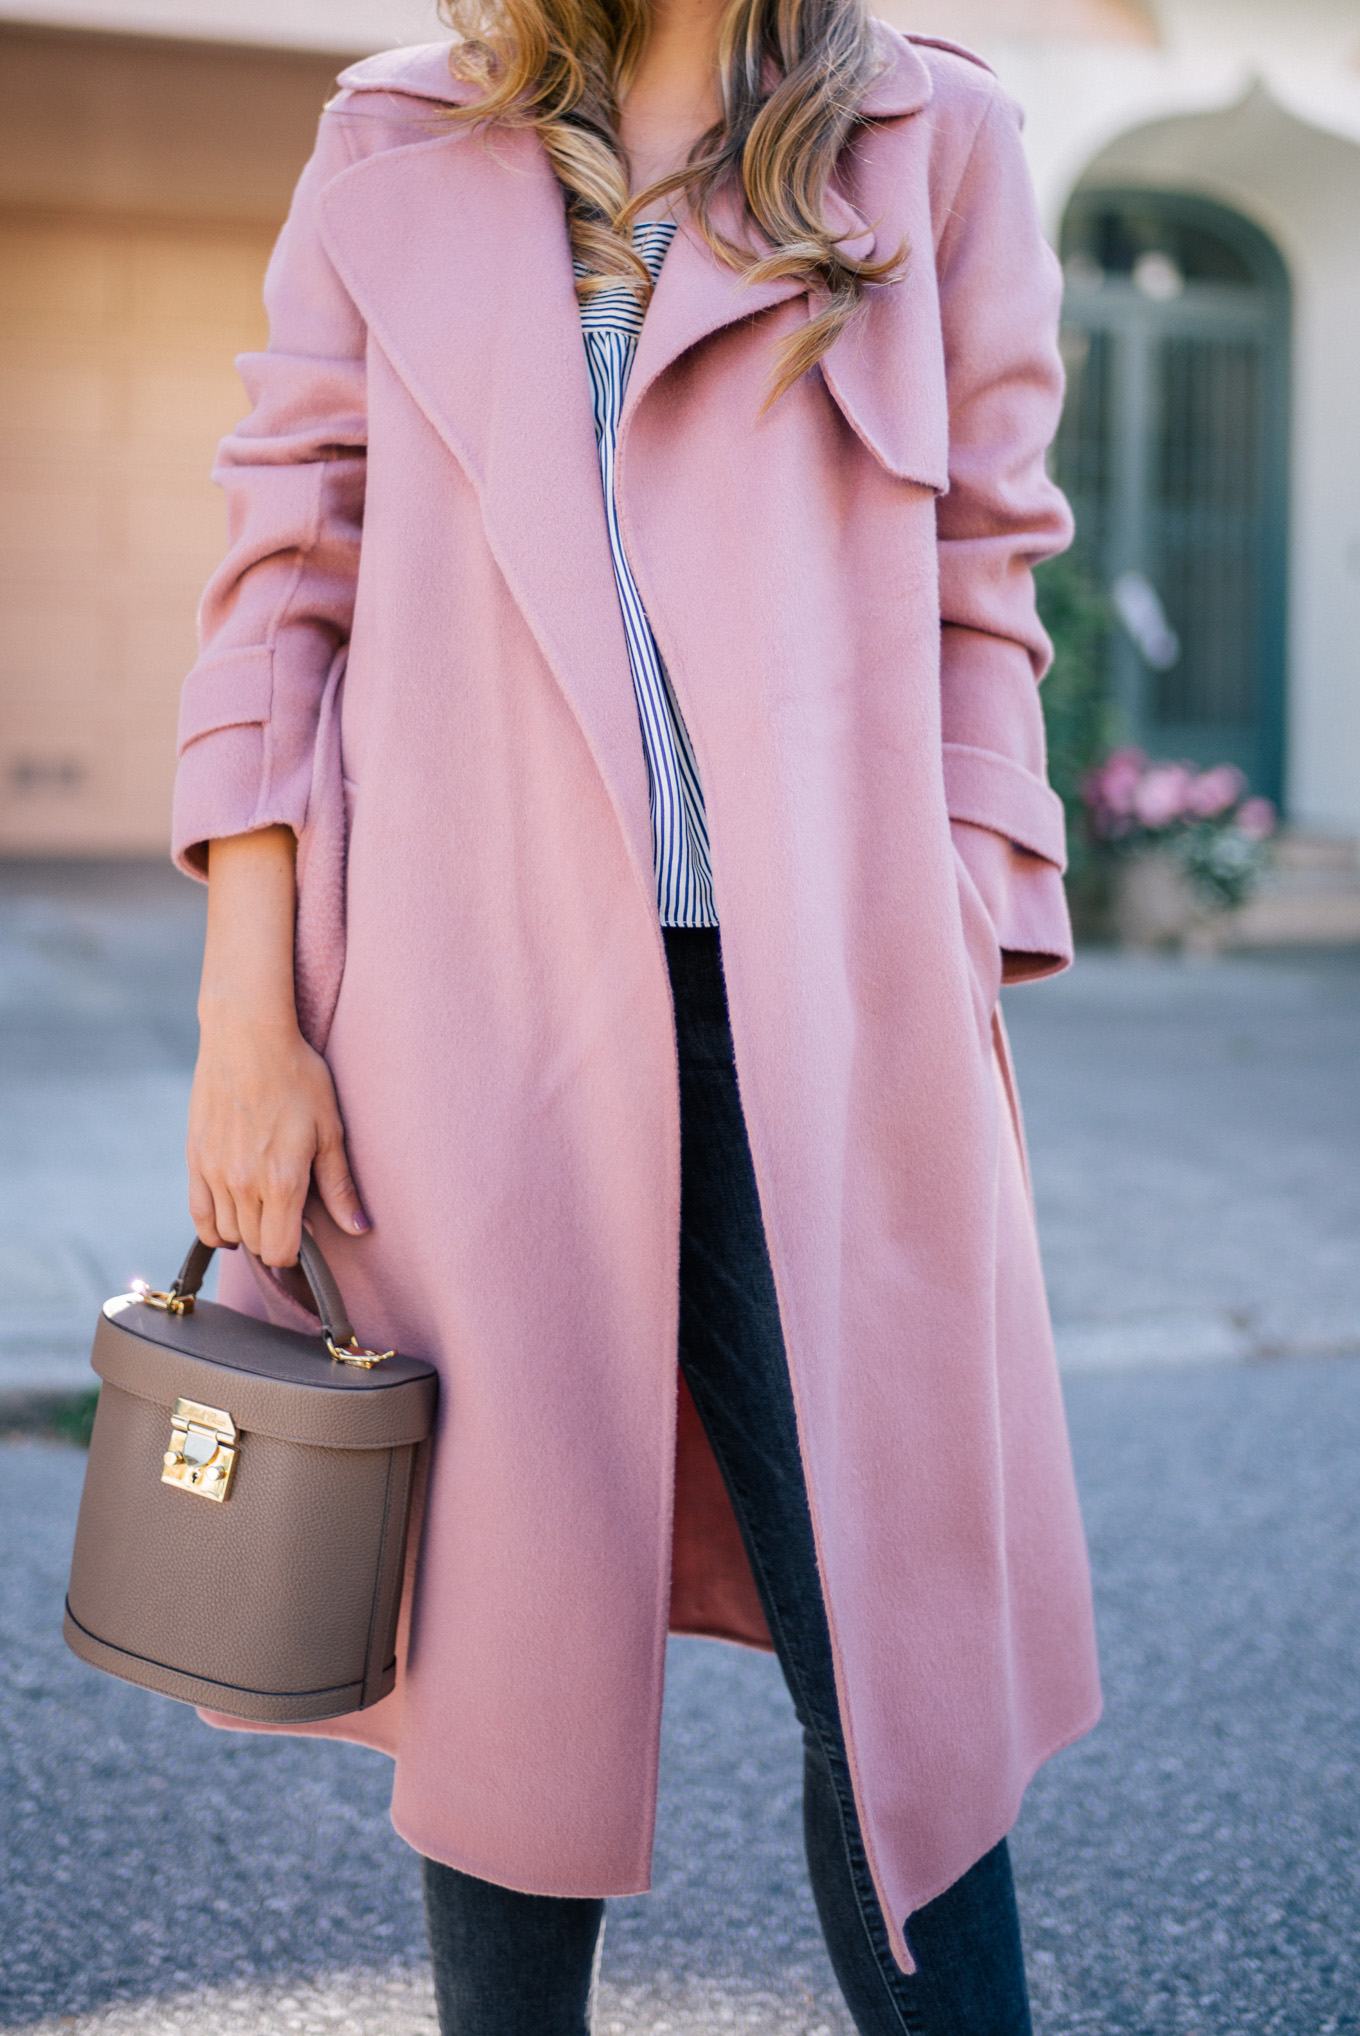 gmg-pink-fall-coat-1009848